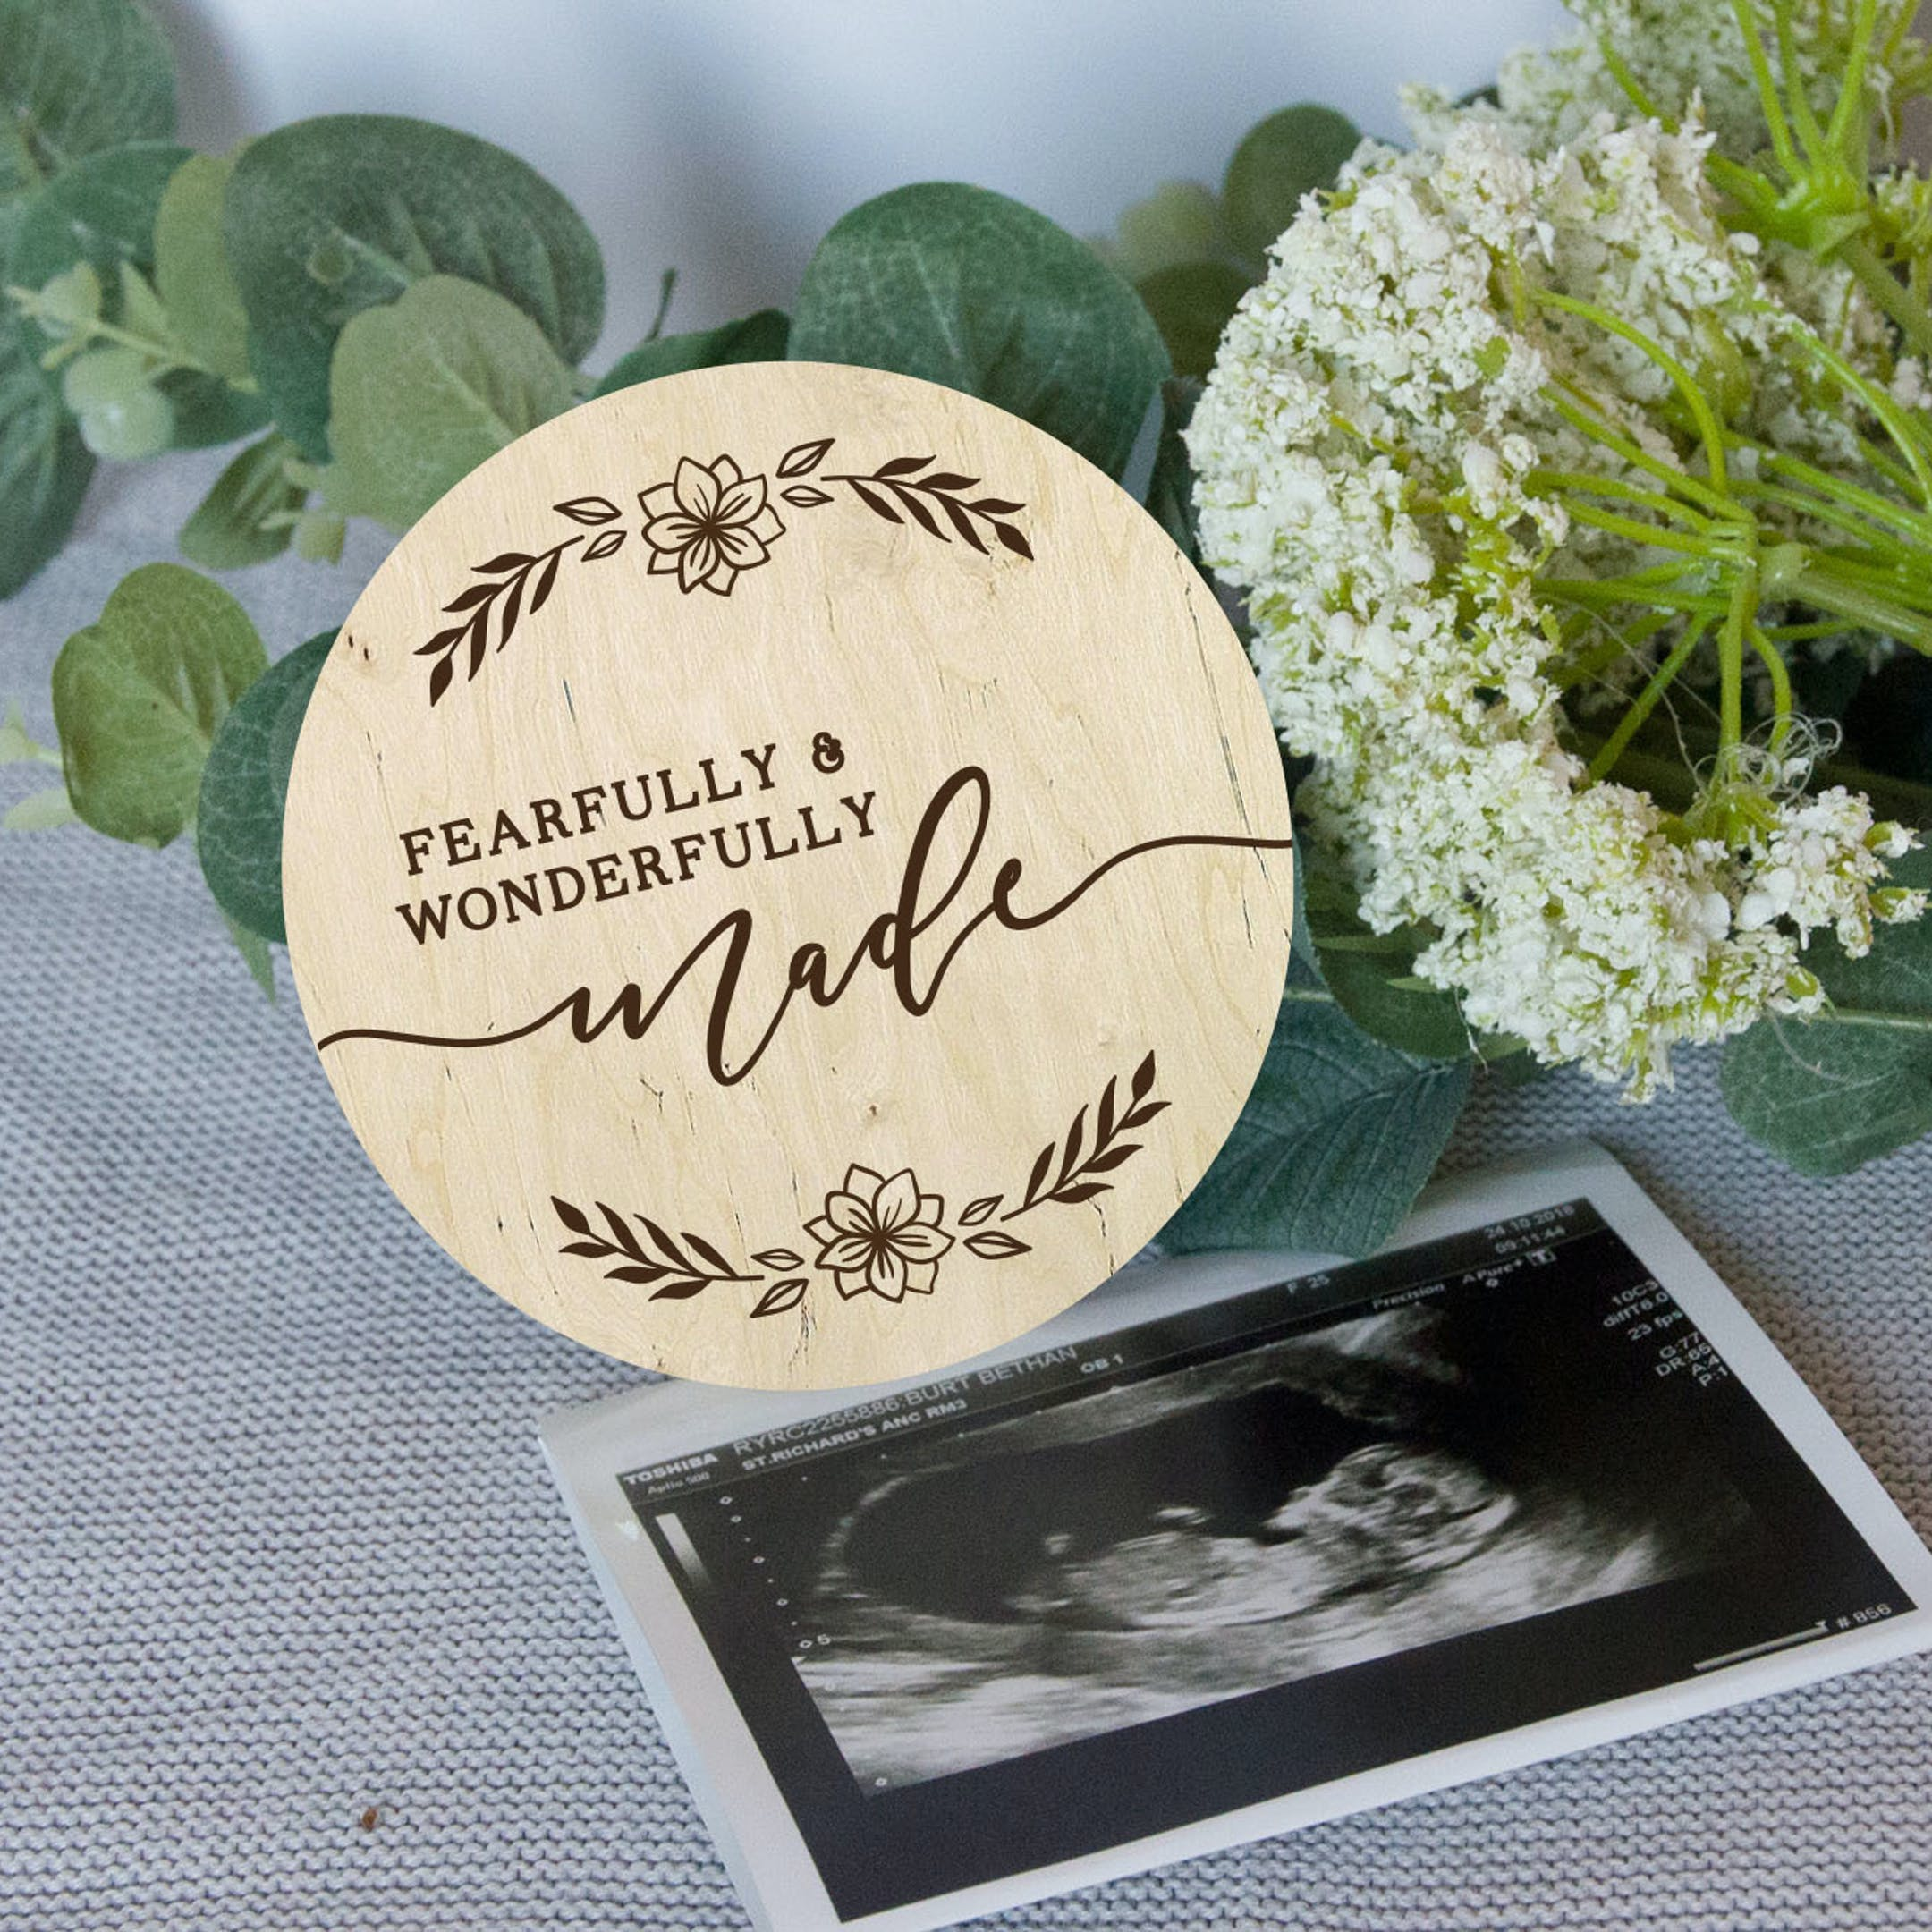 'Fearfully & Wonderfully Made' Wooden Baby Milestone Disc - Psalm 139:14 - Photo Prop - Birch and Tides